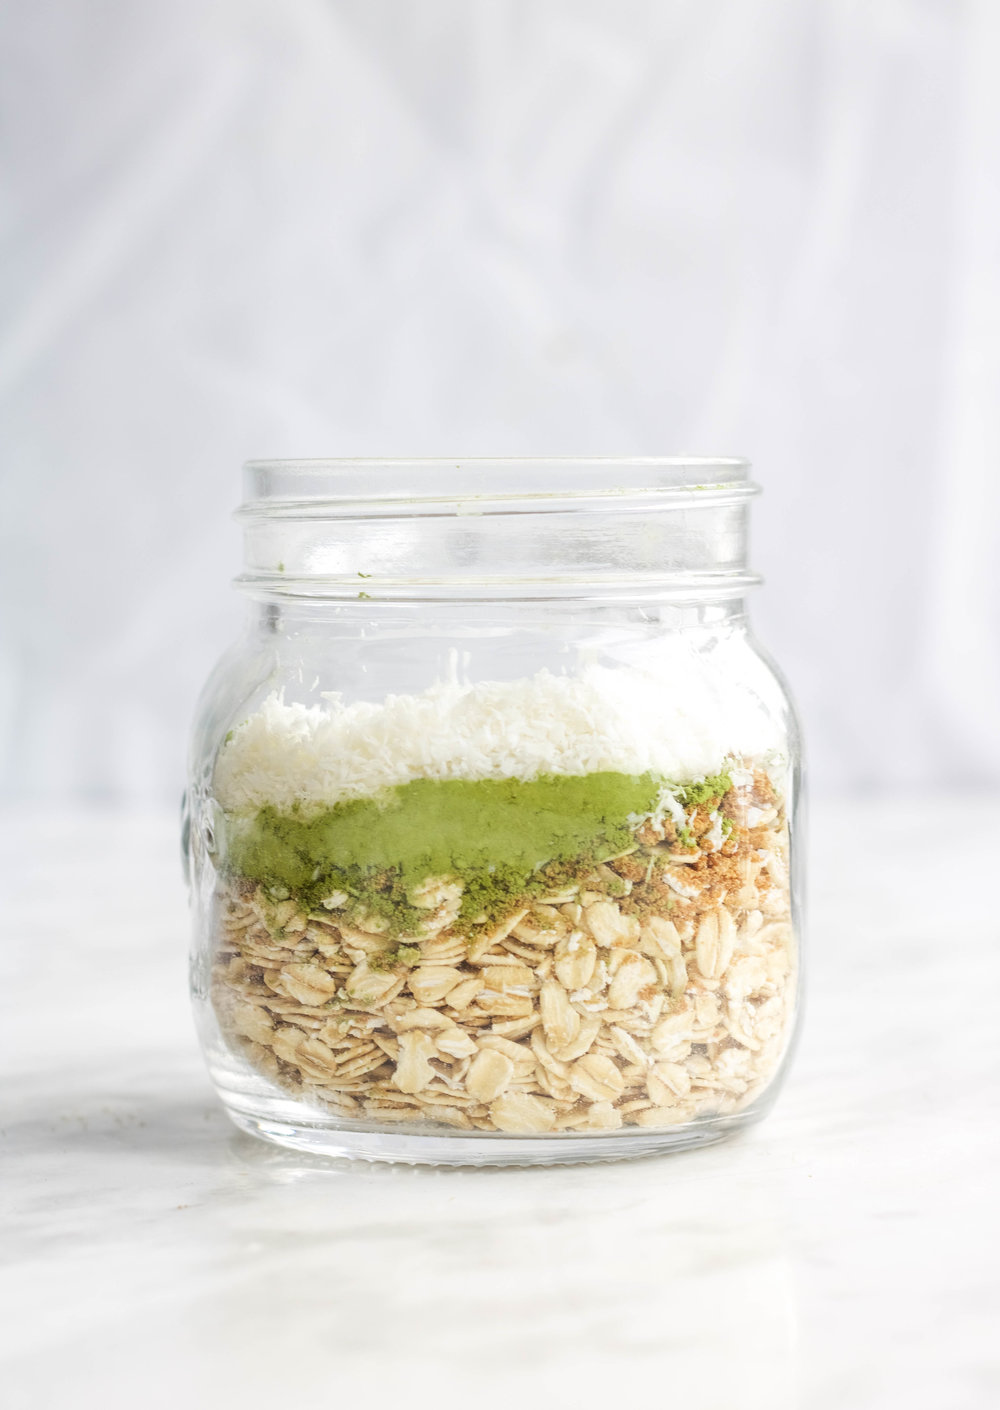 Coconut Matcha Oatmeal  - Ingredients:1 Serving of the base 2 tsp Matcha powder2 heaping tbsp coconut flakes